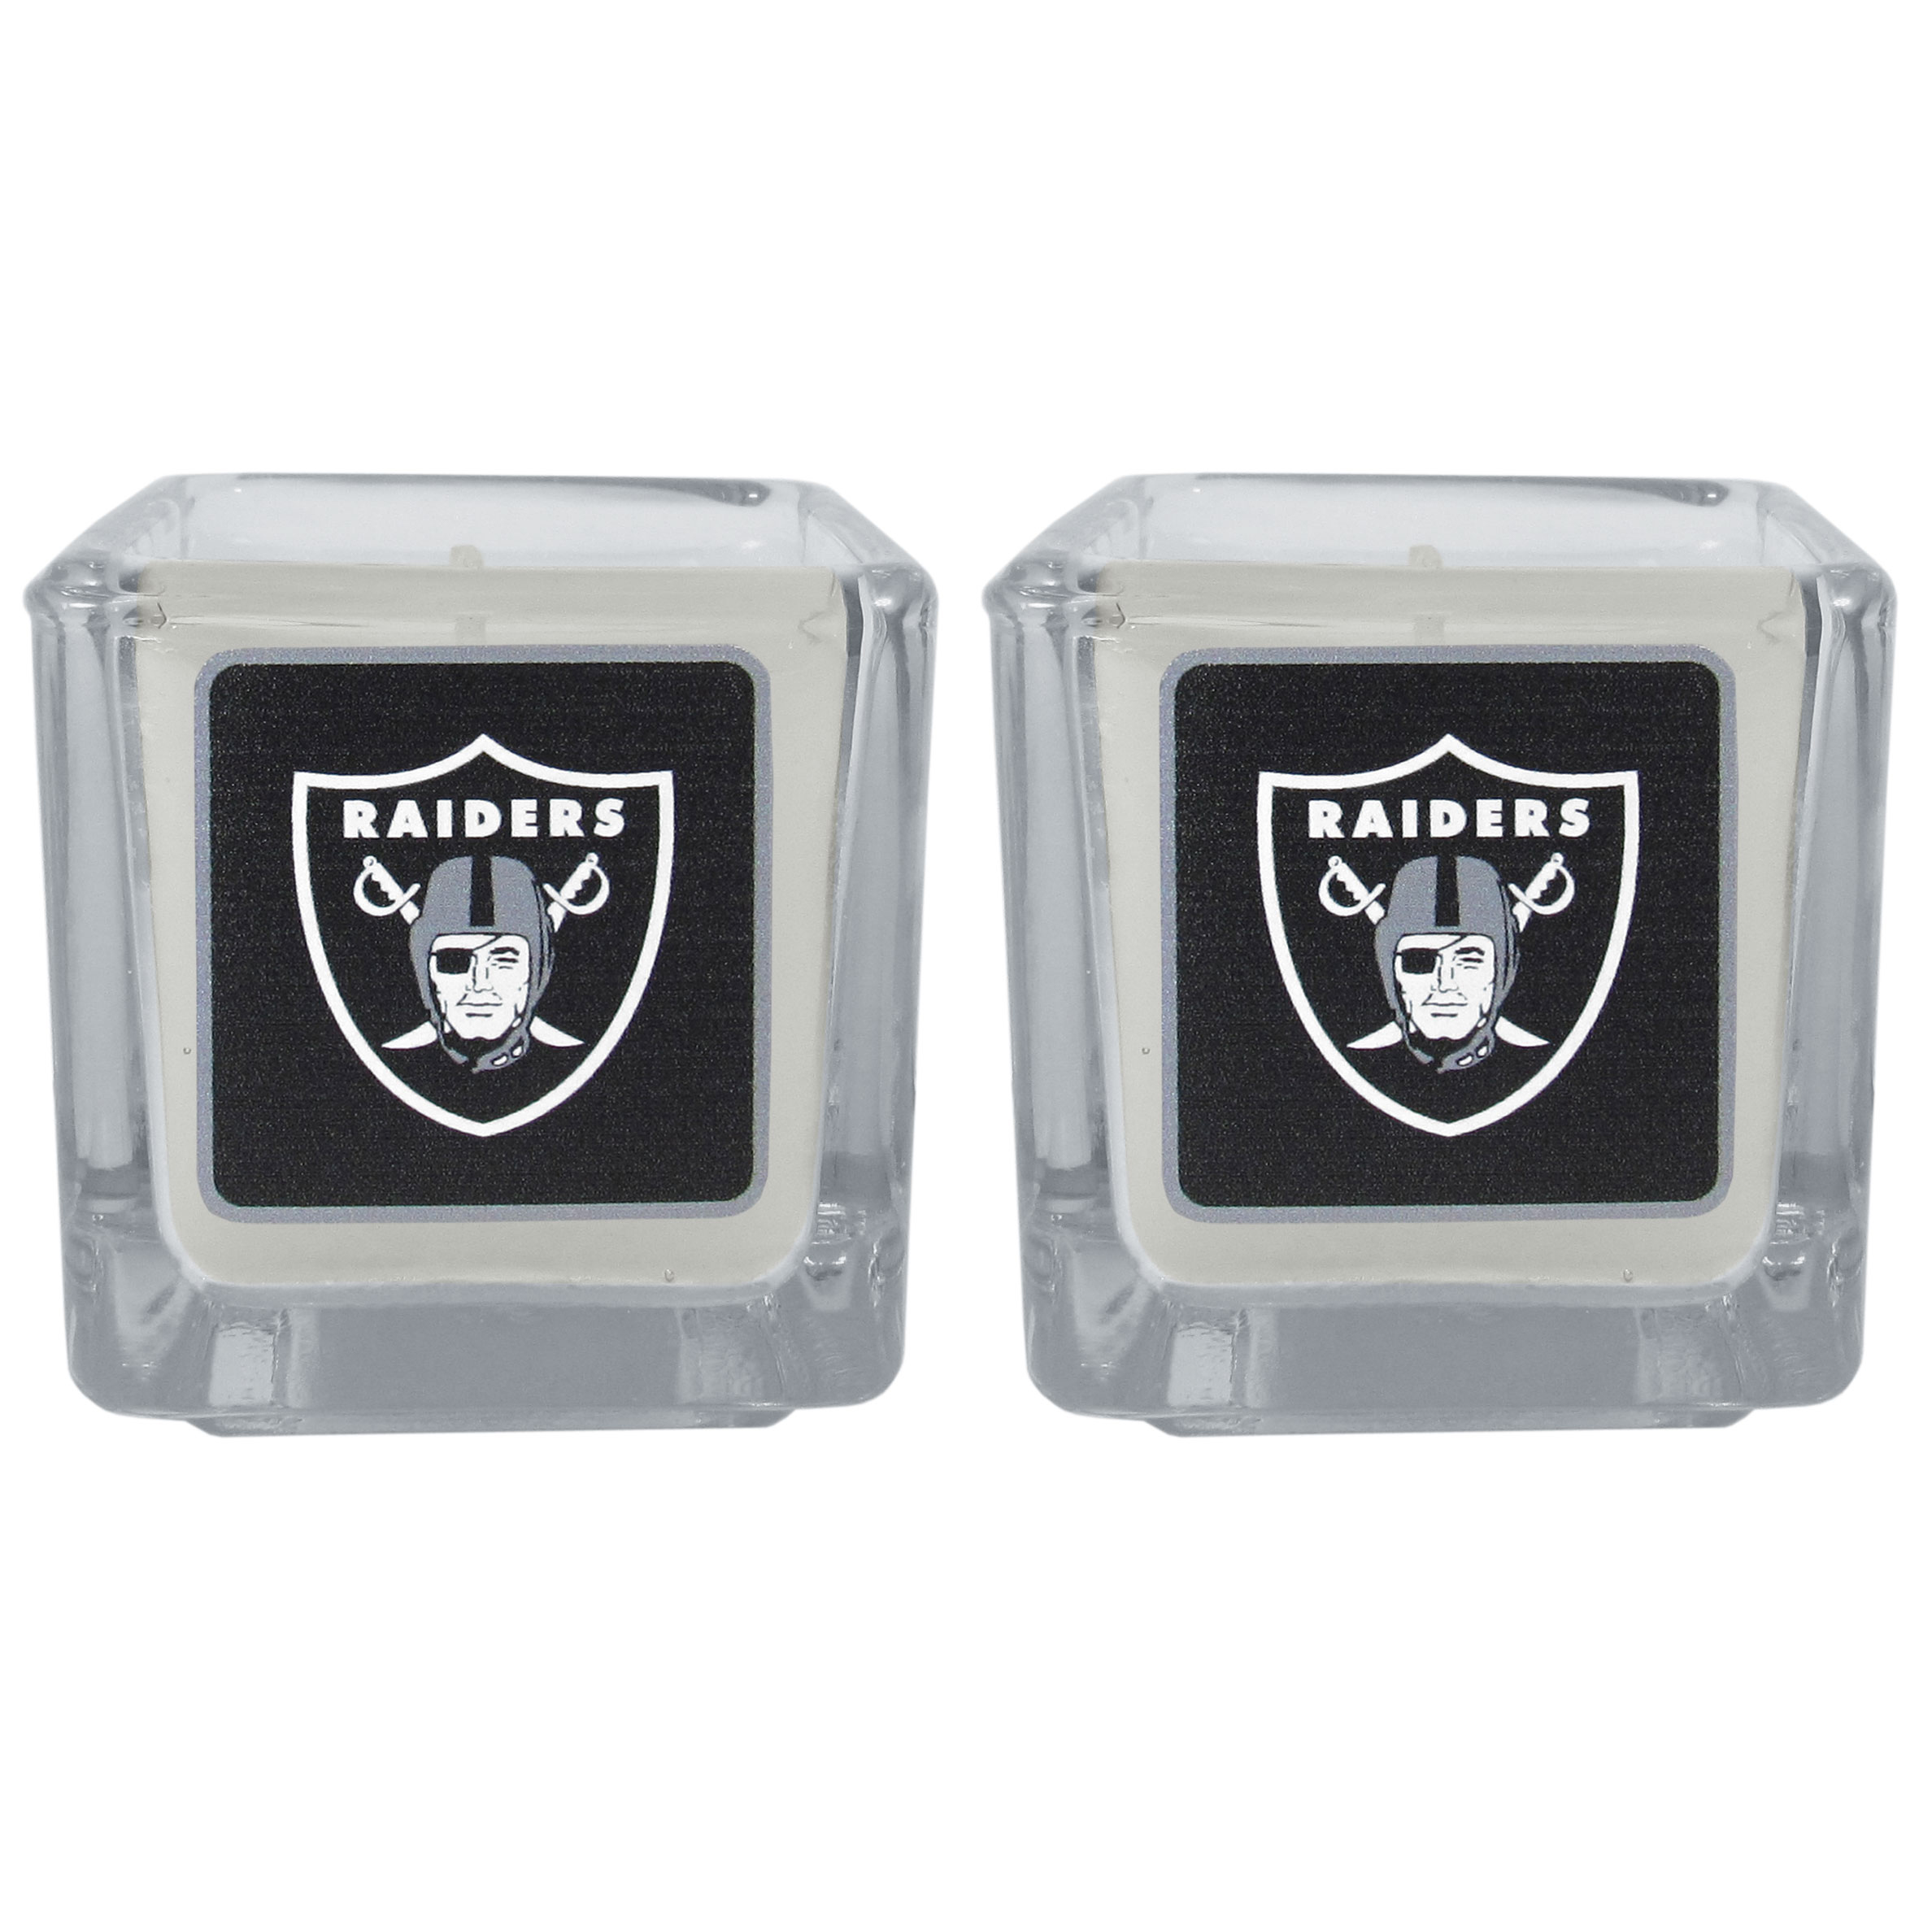 Oakland Raiders Graphics Candle Set - Our candle set features 2 lightly vanilla scented candles with the Oakland Raiders logo expertly printed on front. The candles are 2 inches tall in the votive style.